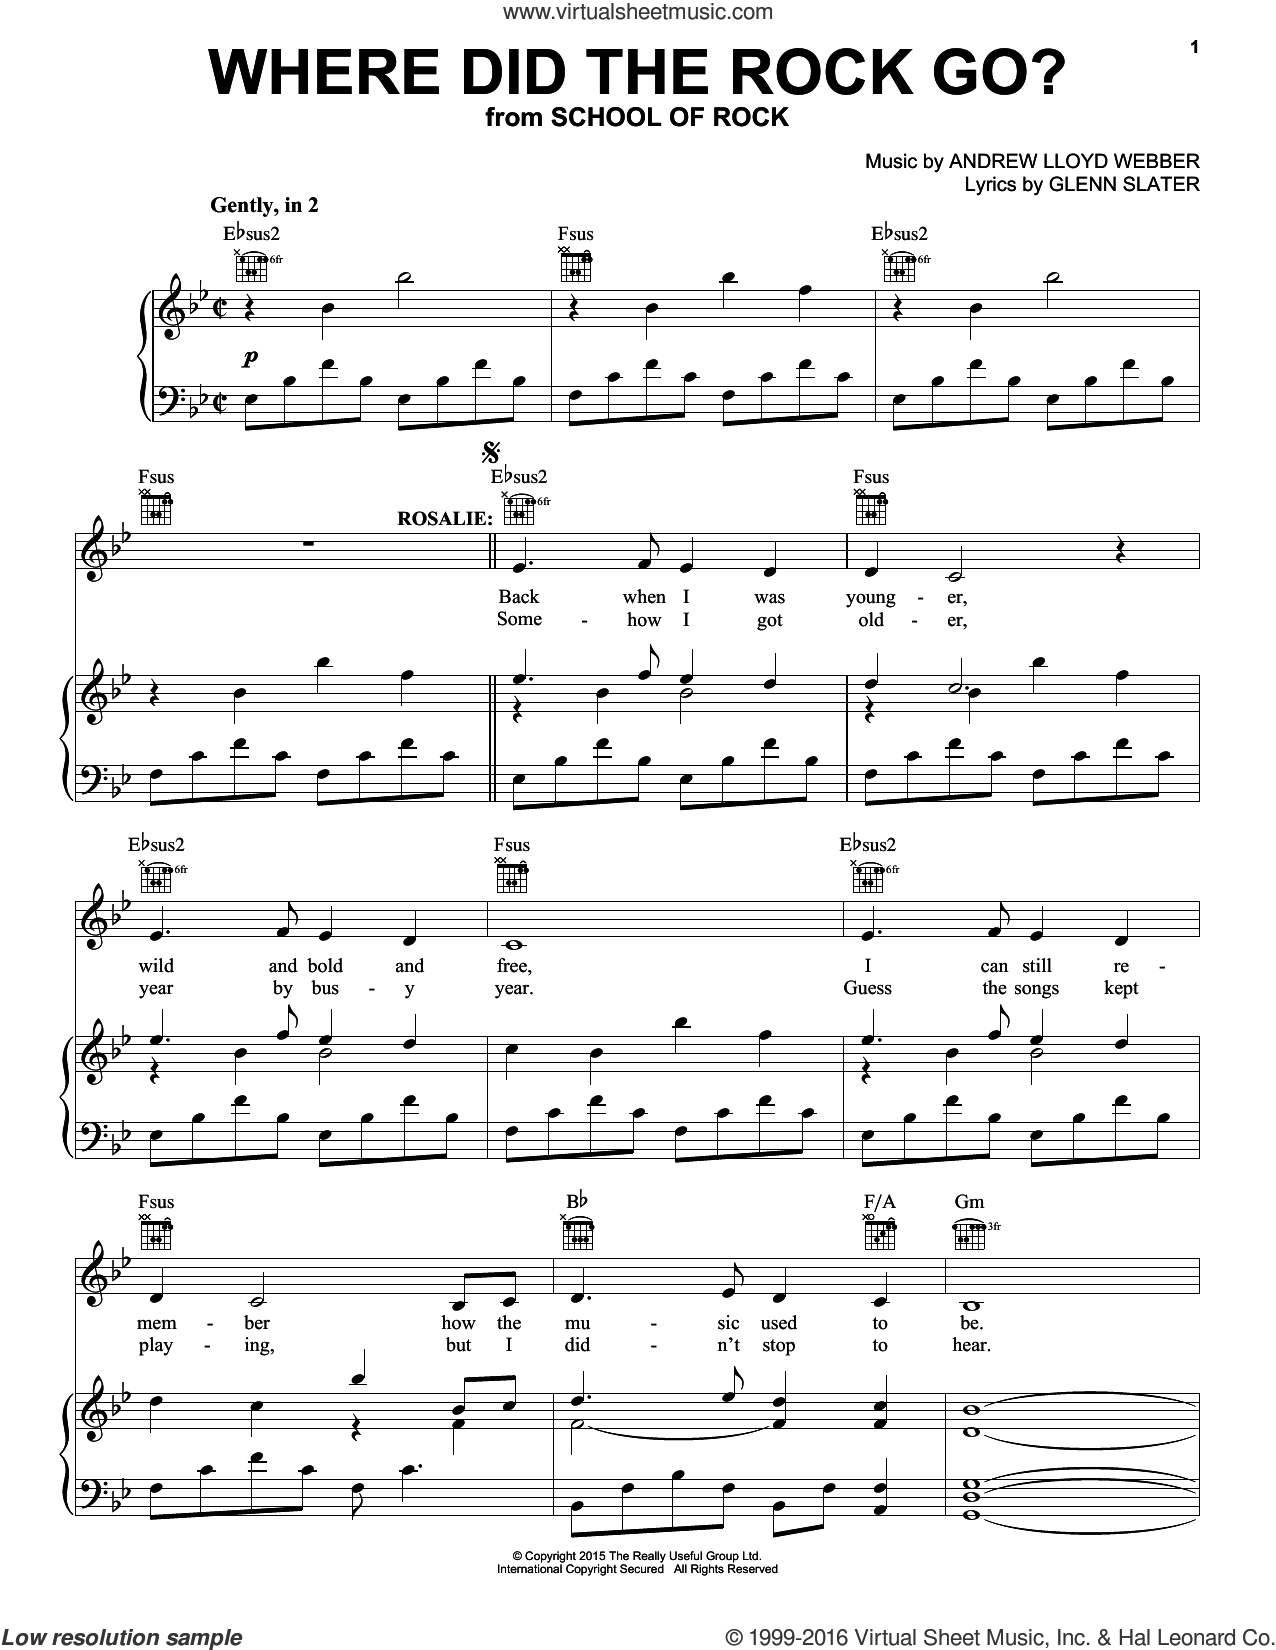 Where Did The Rock Go? sheet music for voice, piano or guitar by Andrew Lloyd Webber and Glenn Slater, intermediate. Score Image Preview.